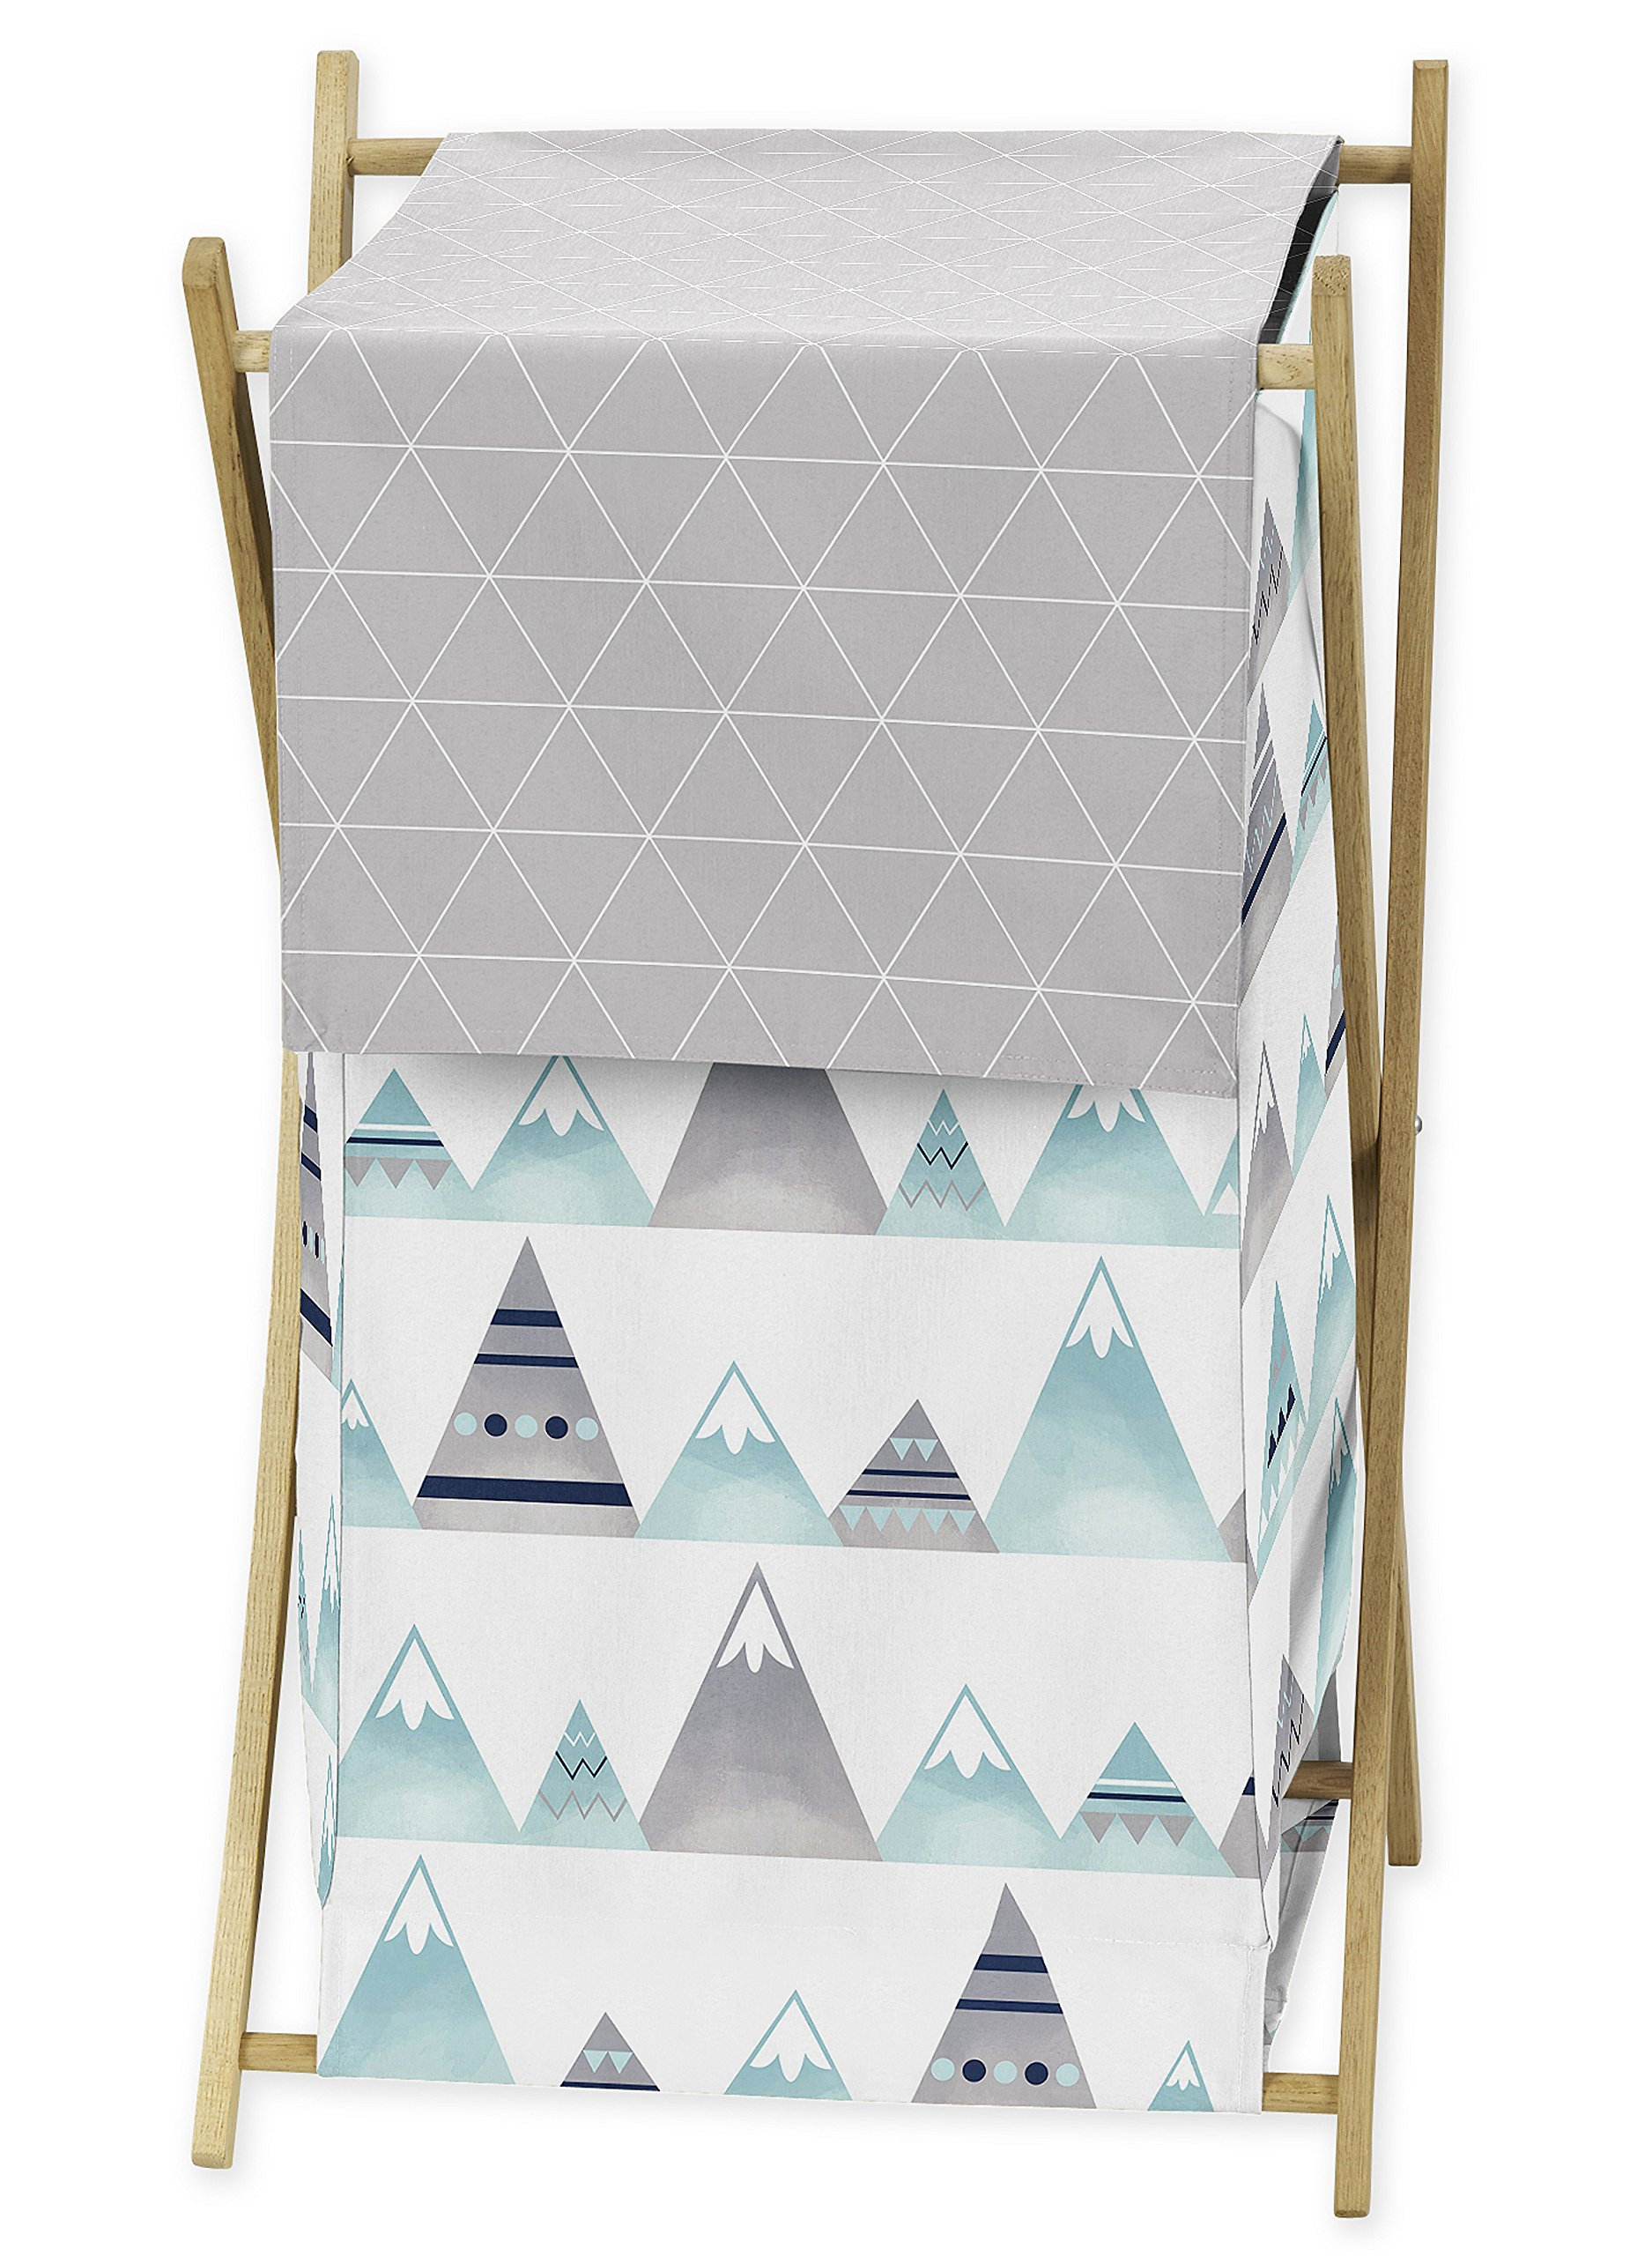 Sweet Jojo Designs Navy Blue, Aqua and Grey Aztec Baby Kid Clothes Laundry Hamper for Mountains Collection by by Sweet Jojo Designs